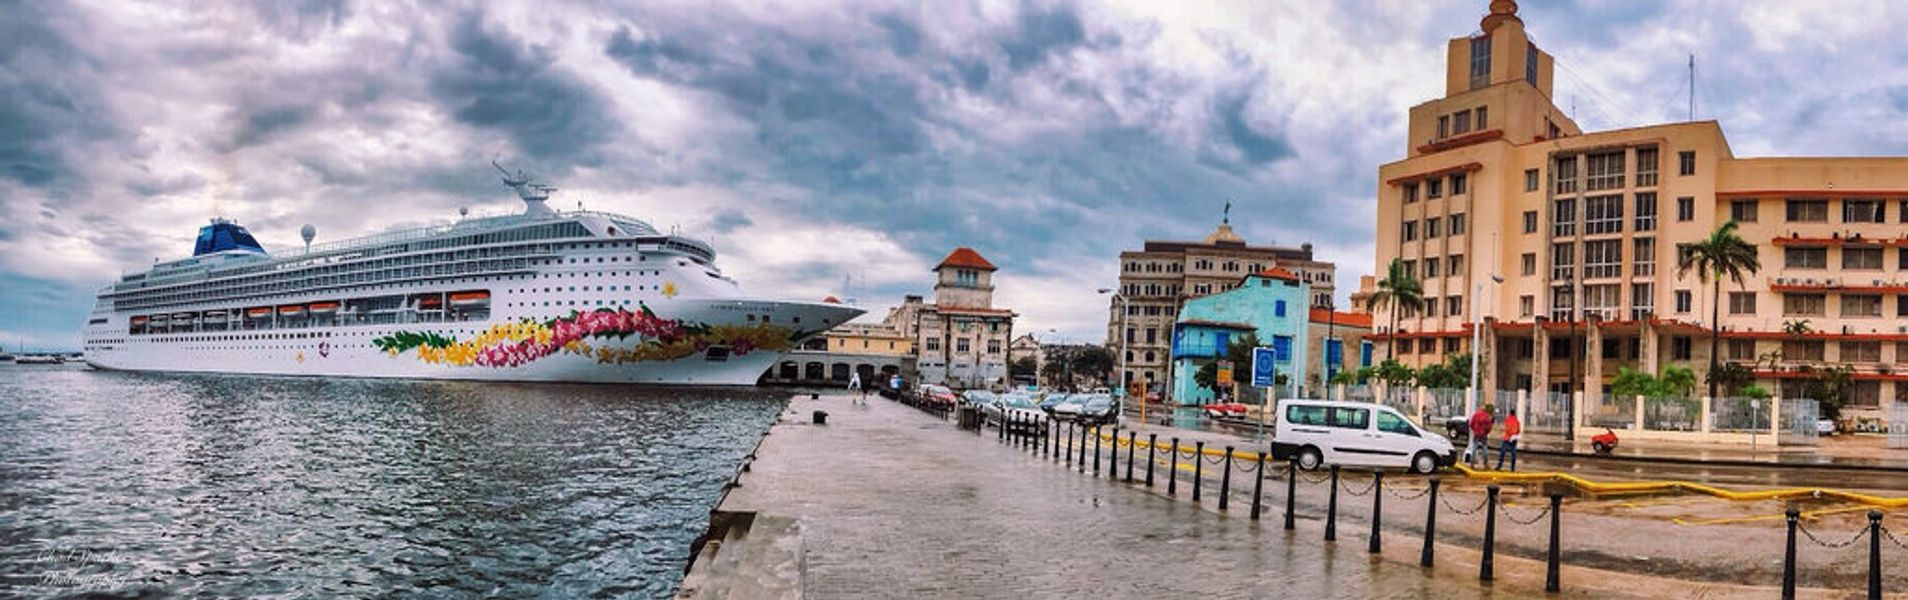 Norwegian Cruise ship docking in Havana for some Cuba shore excursions